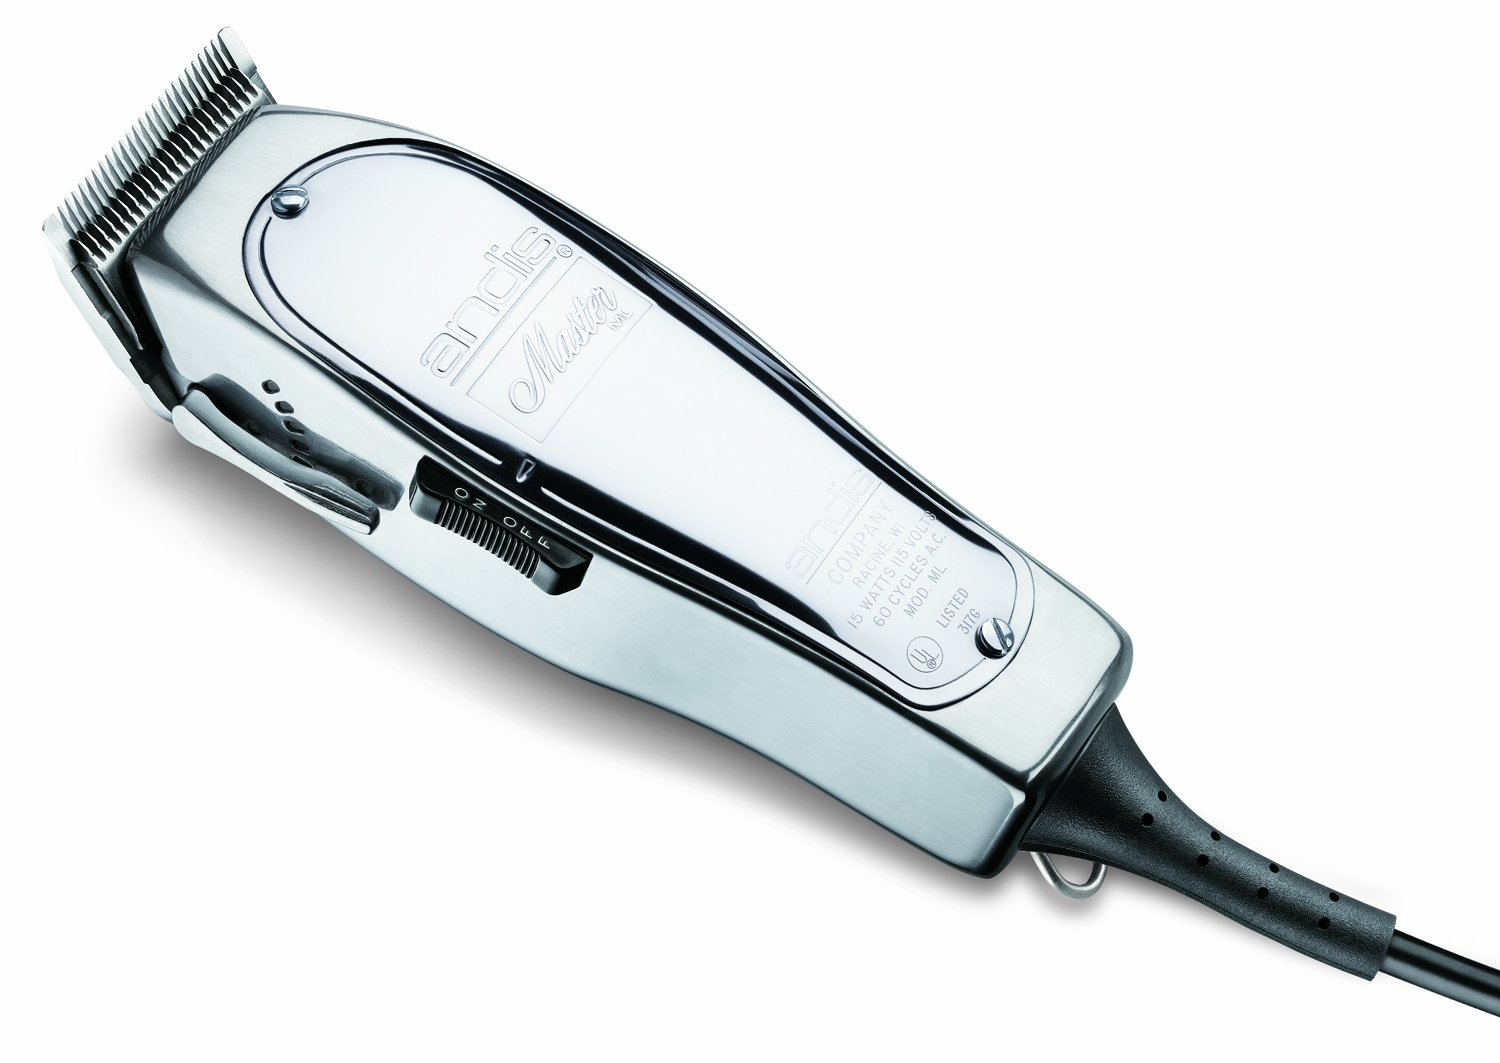 Andis 01557 Professional Master Adjustable Blade Hair Clipper, Silver